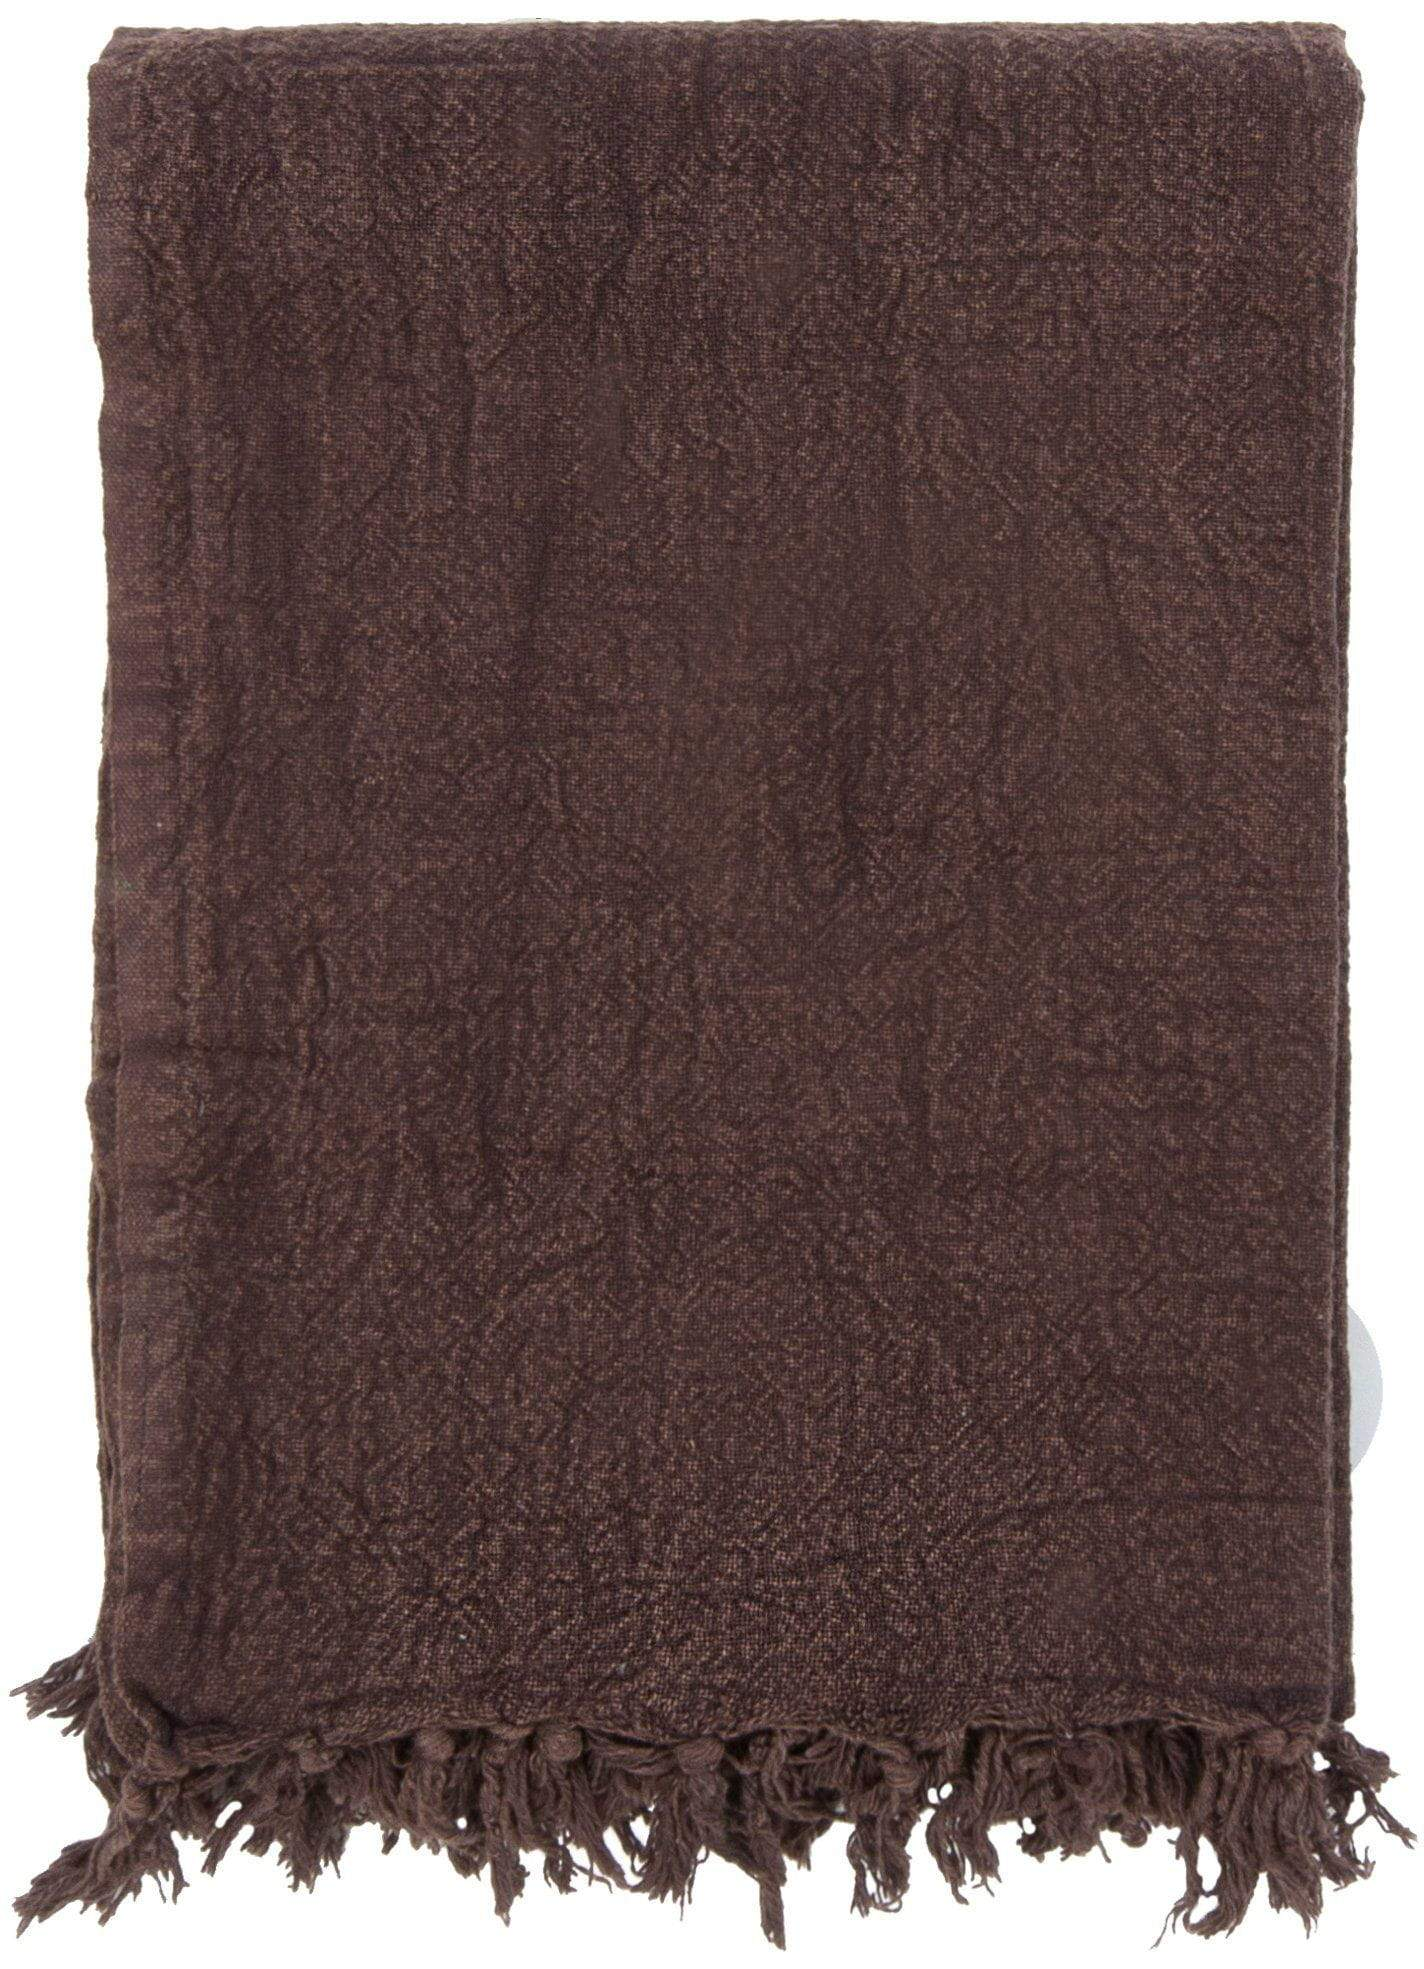 Ian Snow Ltd Chocolate Cotton Throw with Tassels